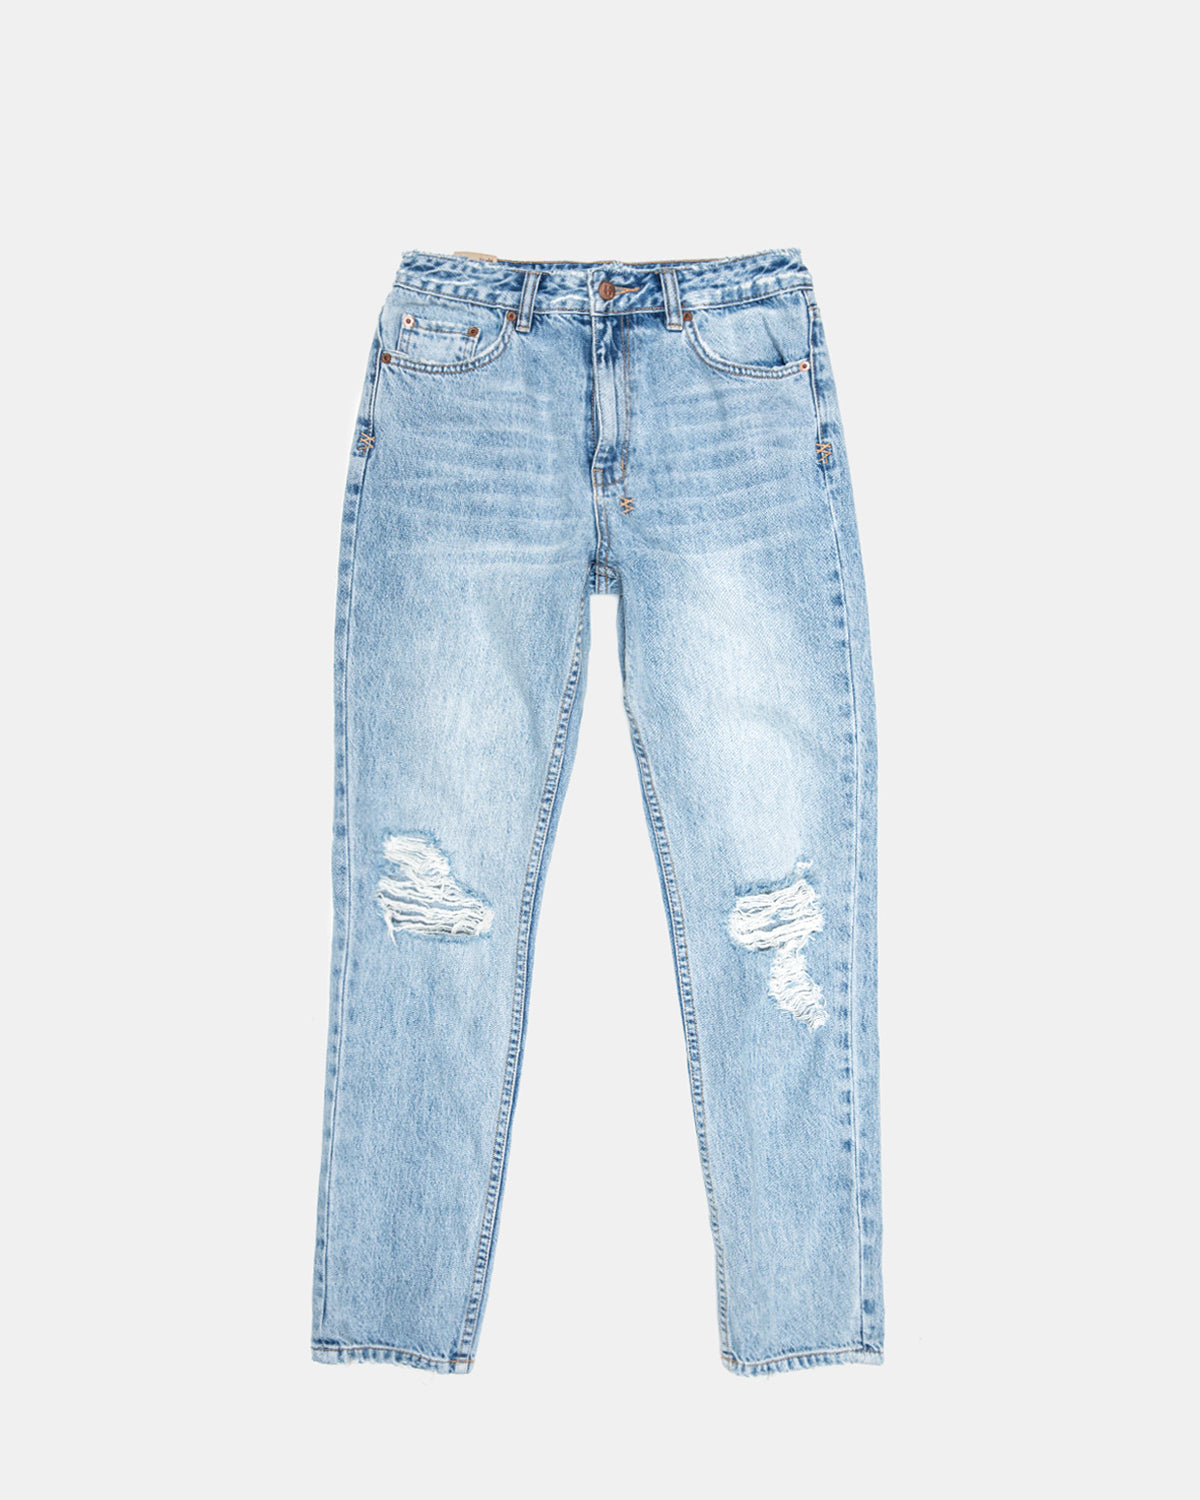 Ksubi - Women's Slim Pin Placid Push Jeans (Denim)